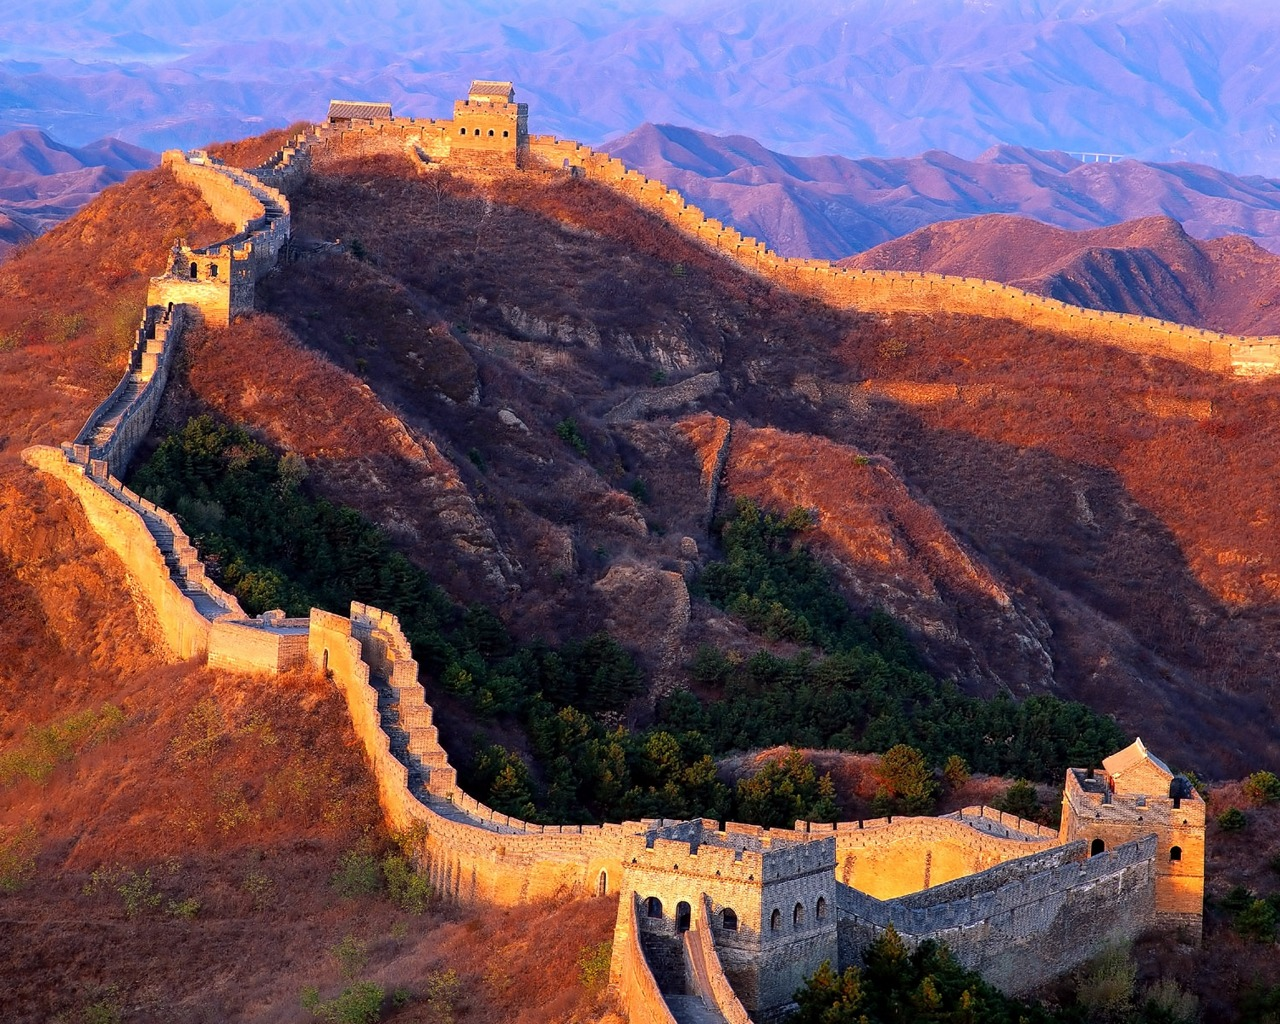 Top Best Hd Wallpapers For Desktop Great Wall Of China Wallpapers